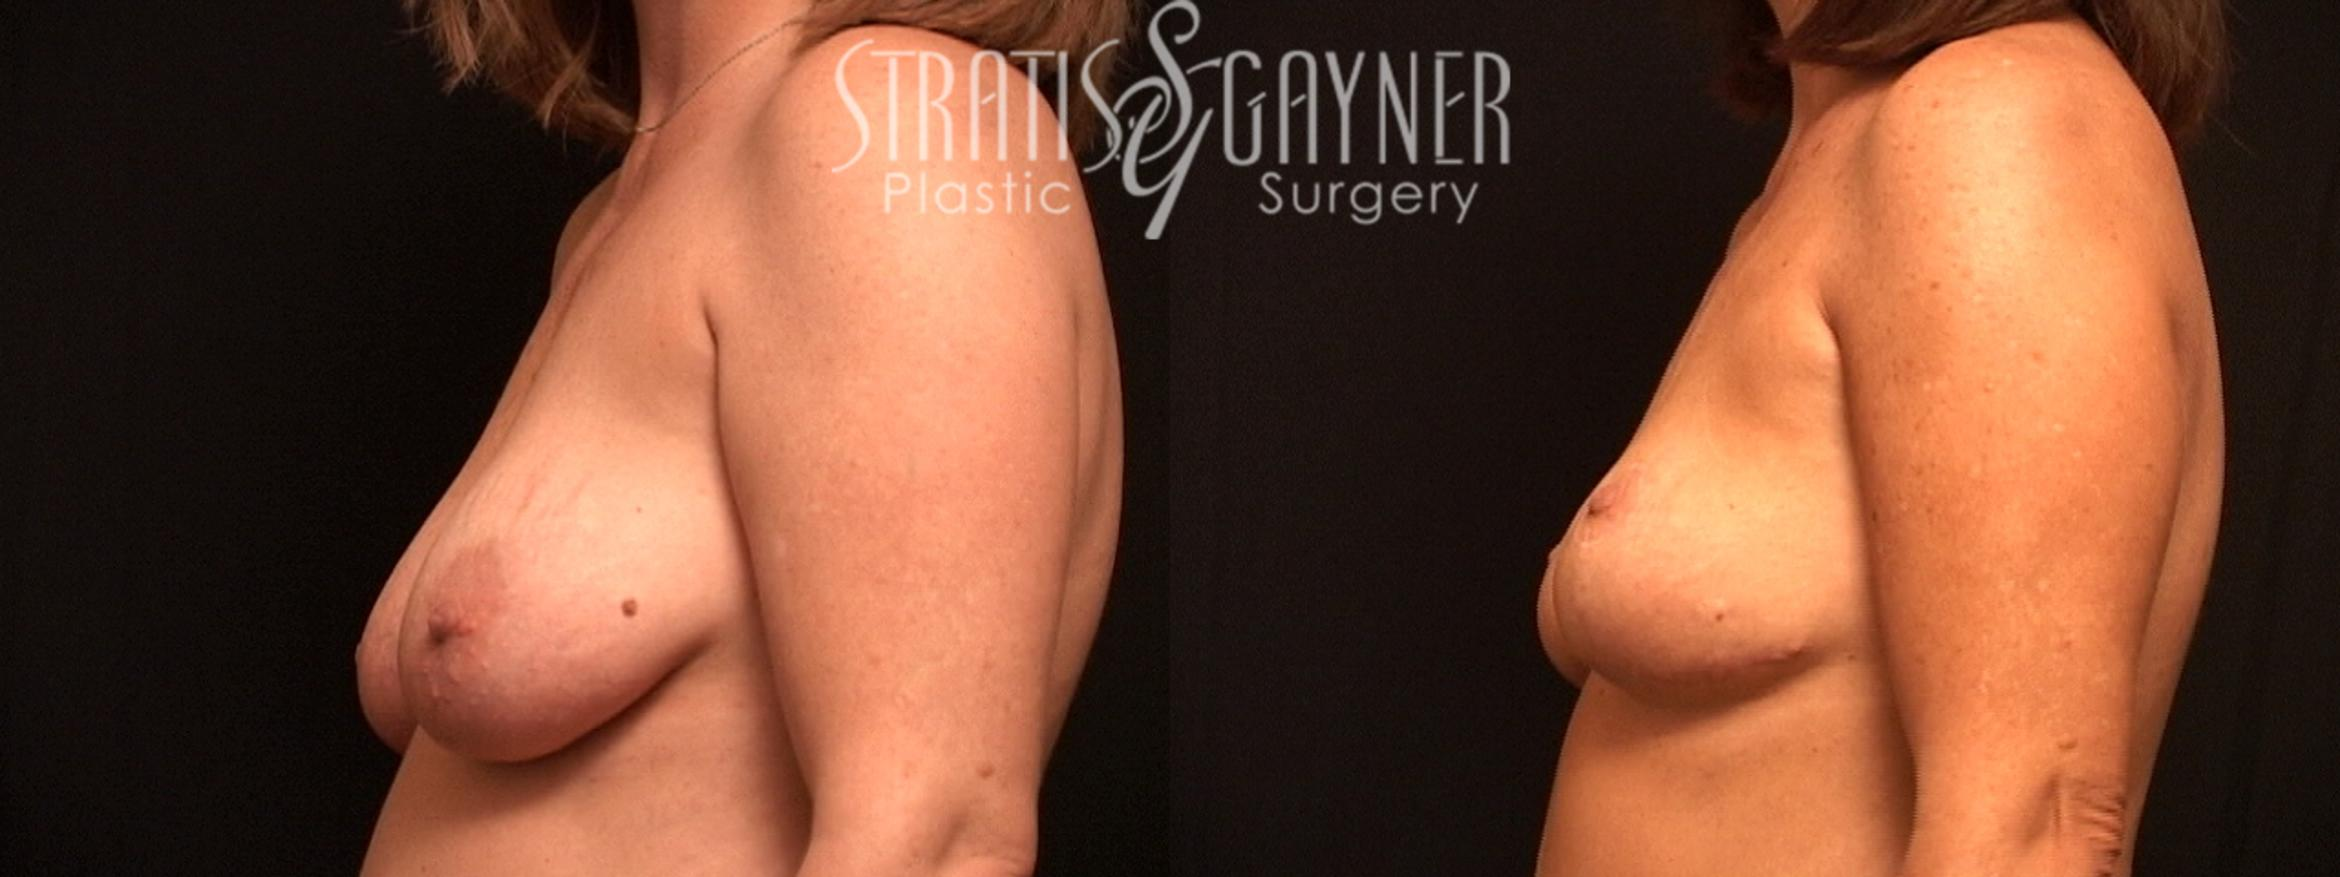 Mommy Makeover Case 55 Before & After View #3 | Harrisburg, PA | Stratis Gayner Plastic Surgery